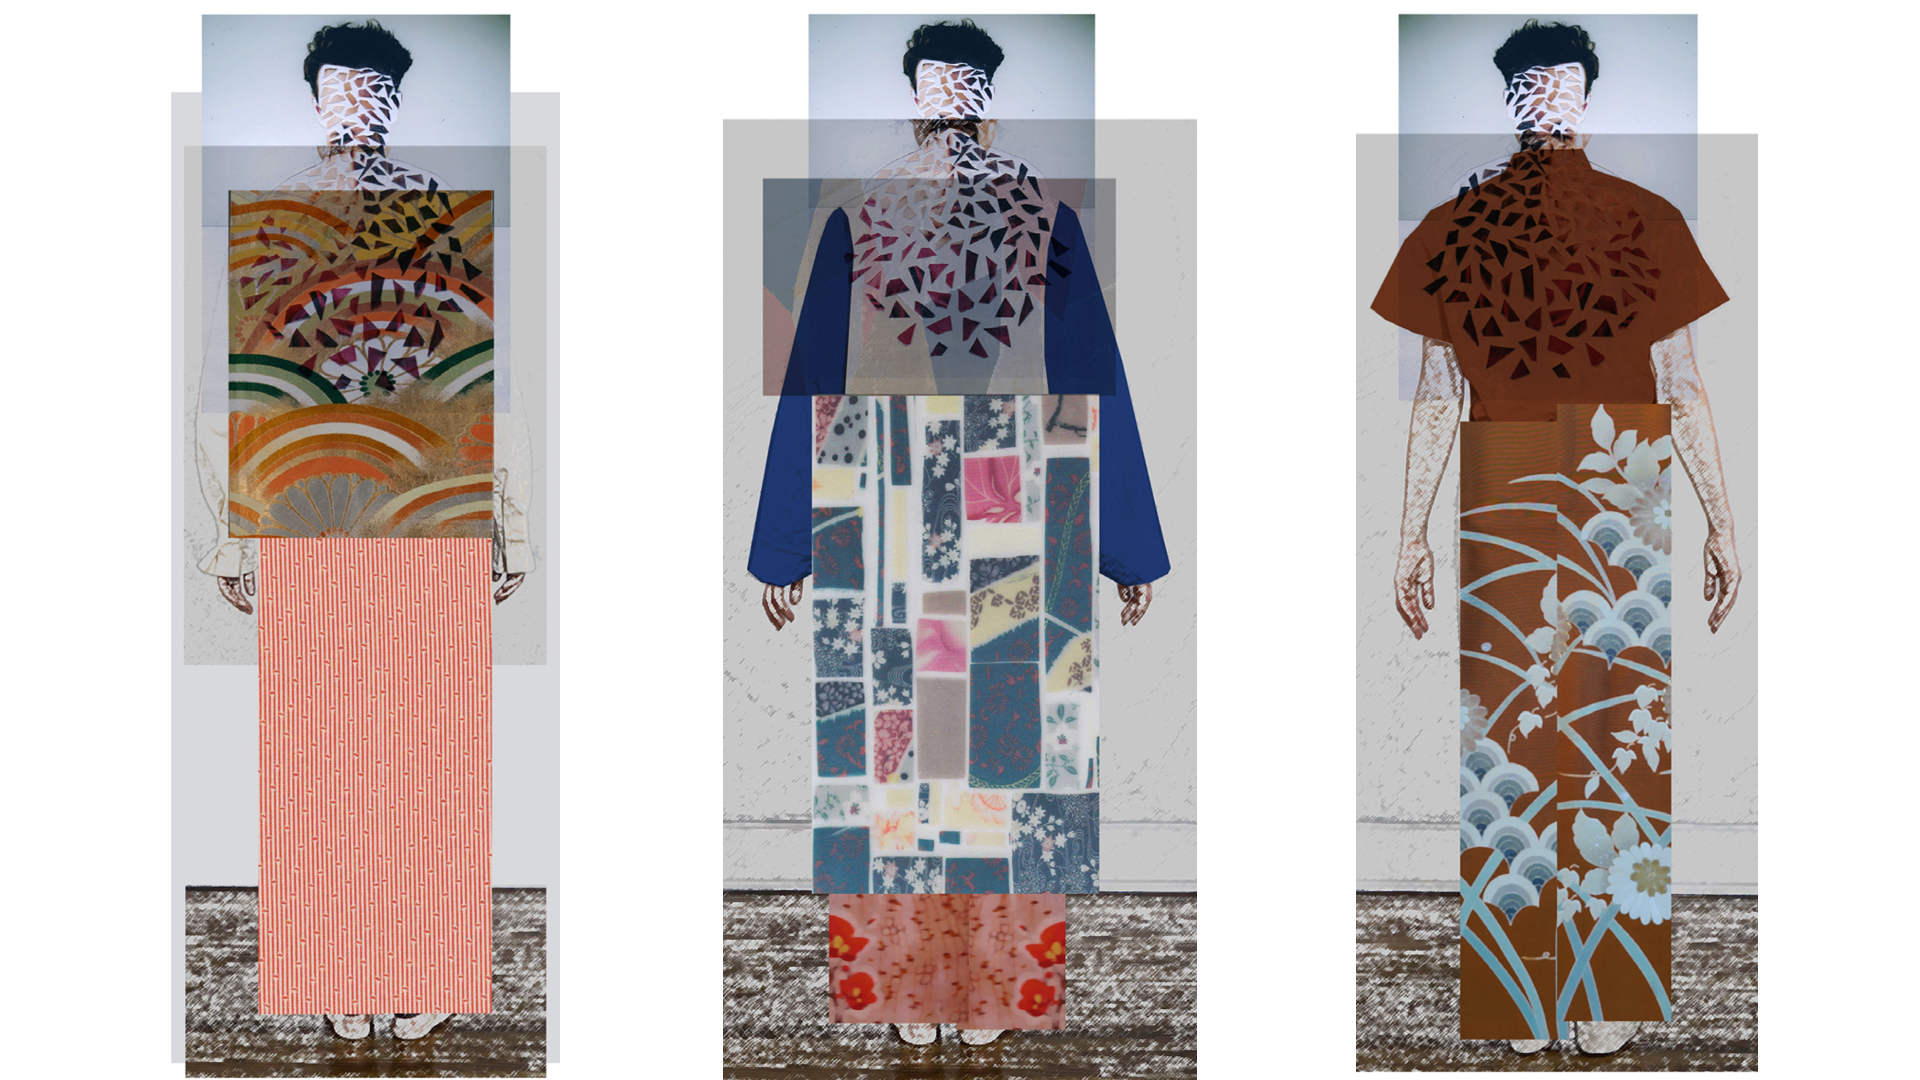 Redress Design Award 2018 submission